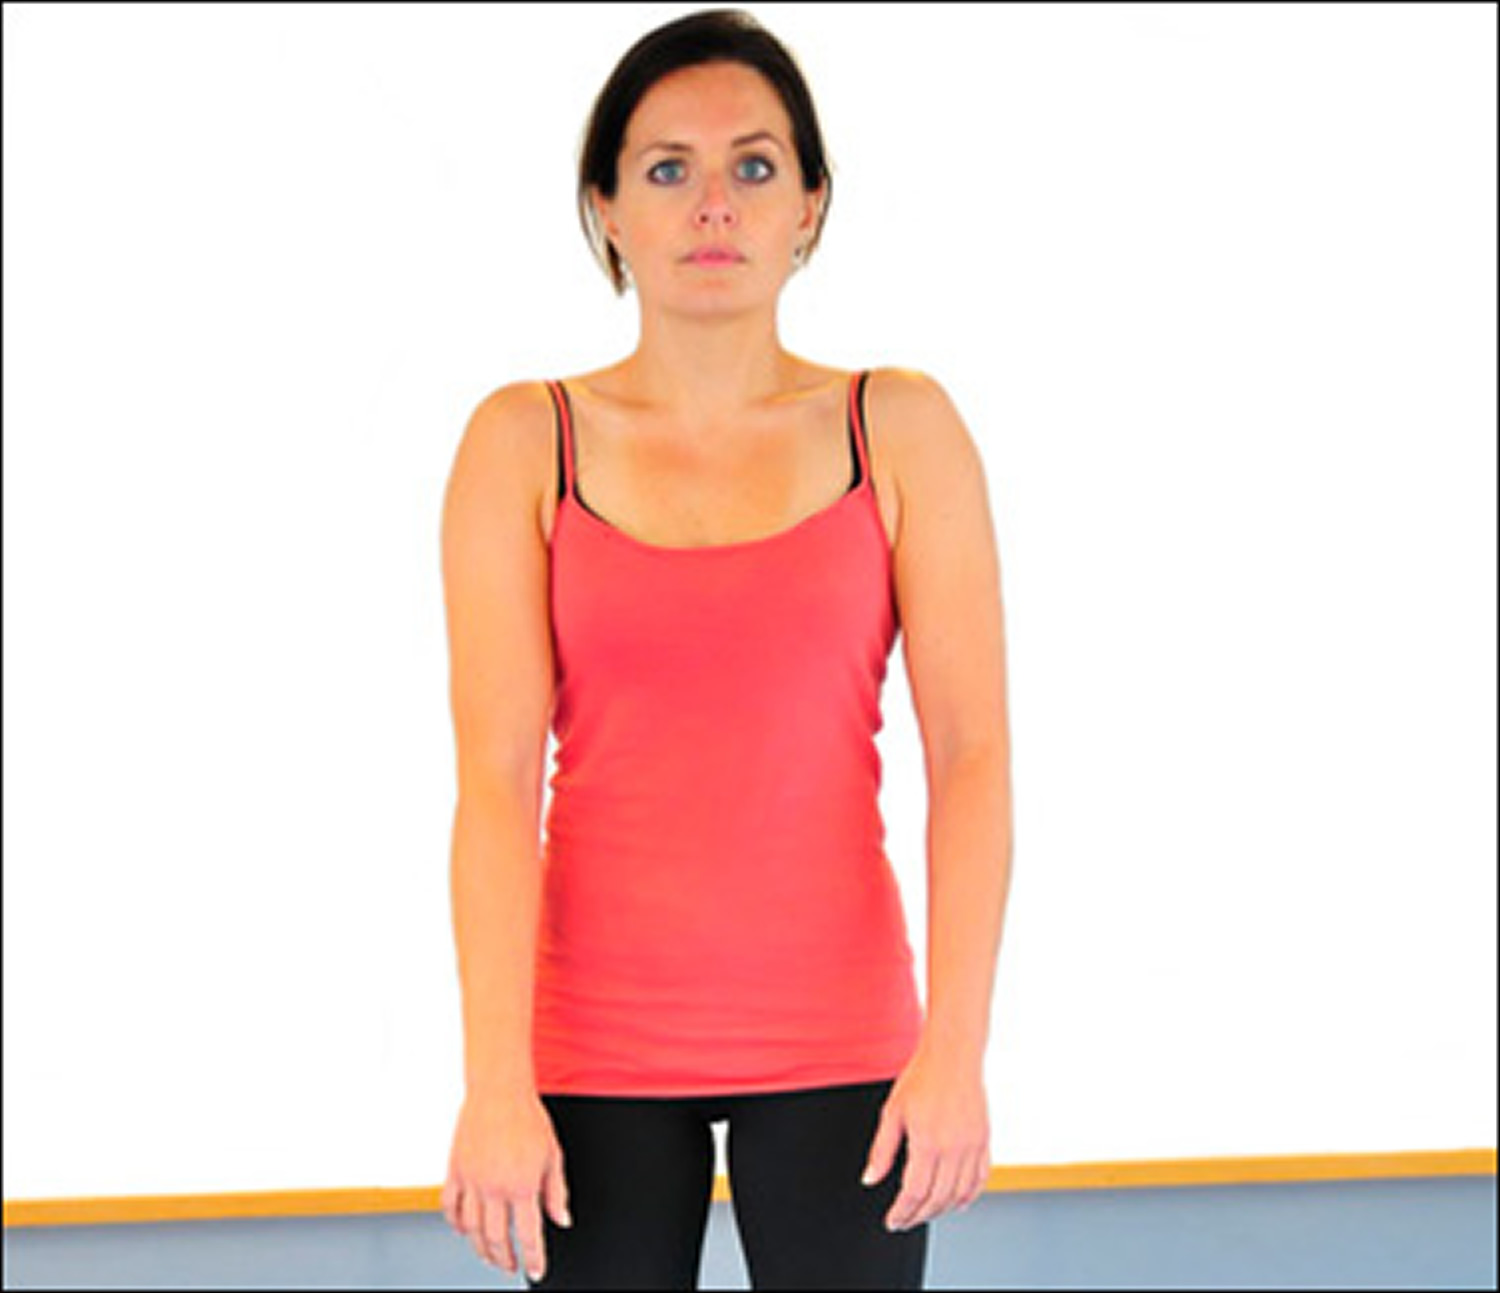 Rounded shoulders - bad posture